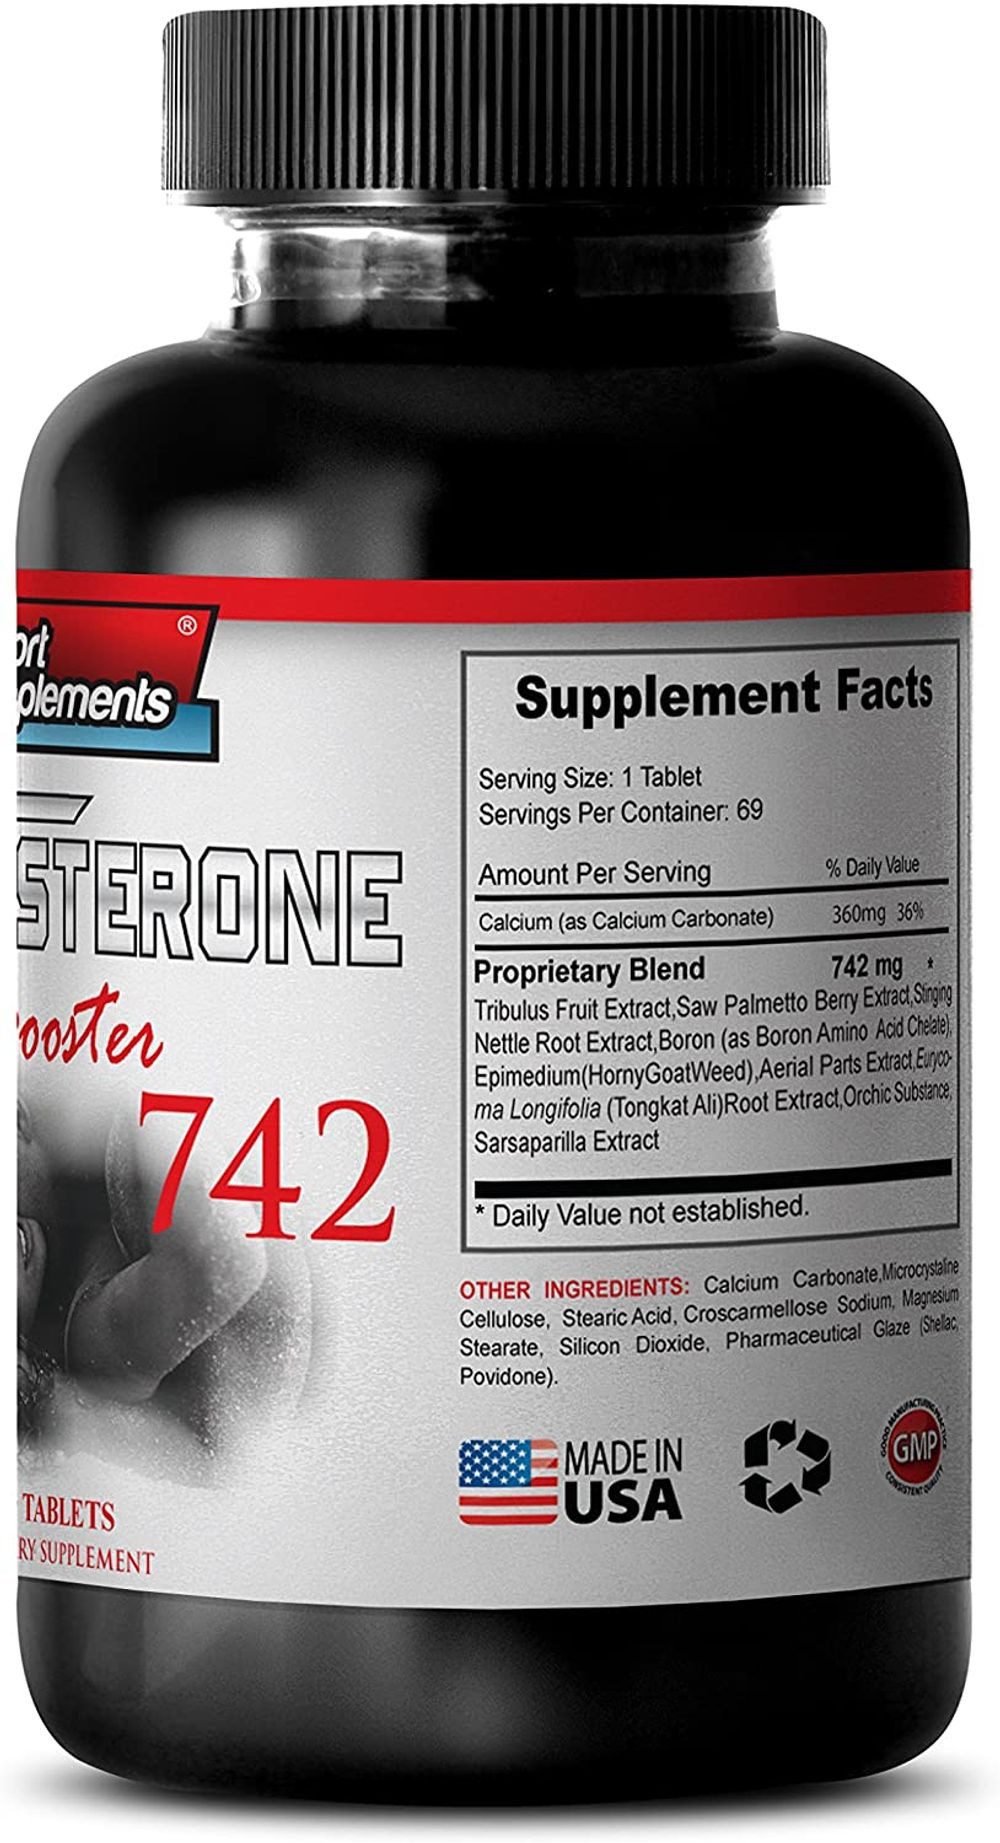 Best Testosterone Booster on The Market - Testosterone Booster 742 - Reduces Fat (2 Bottles